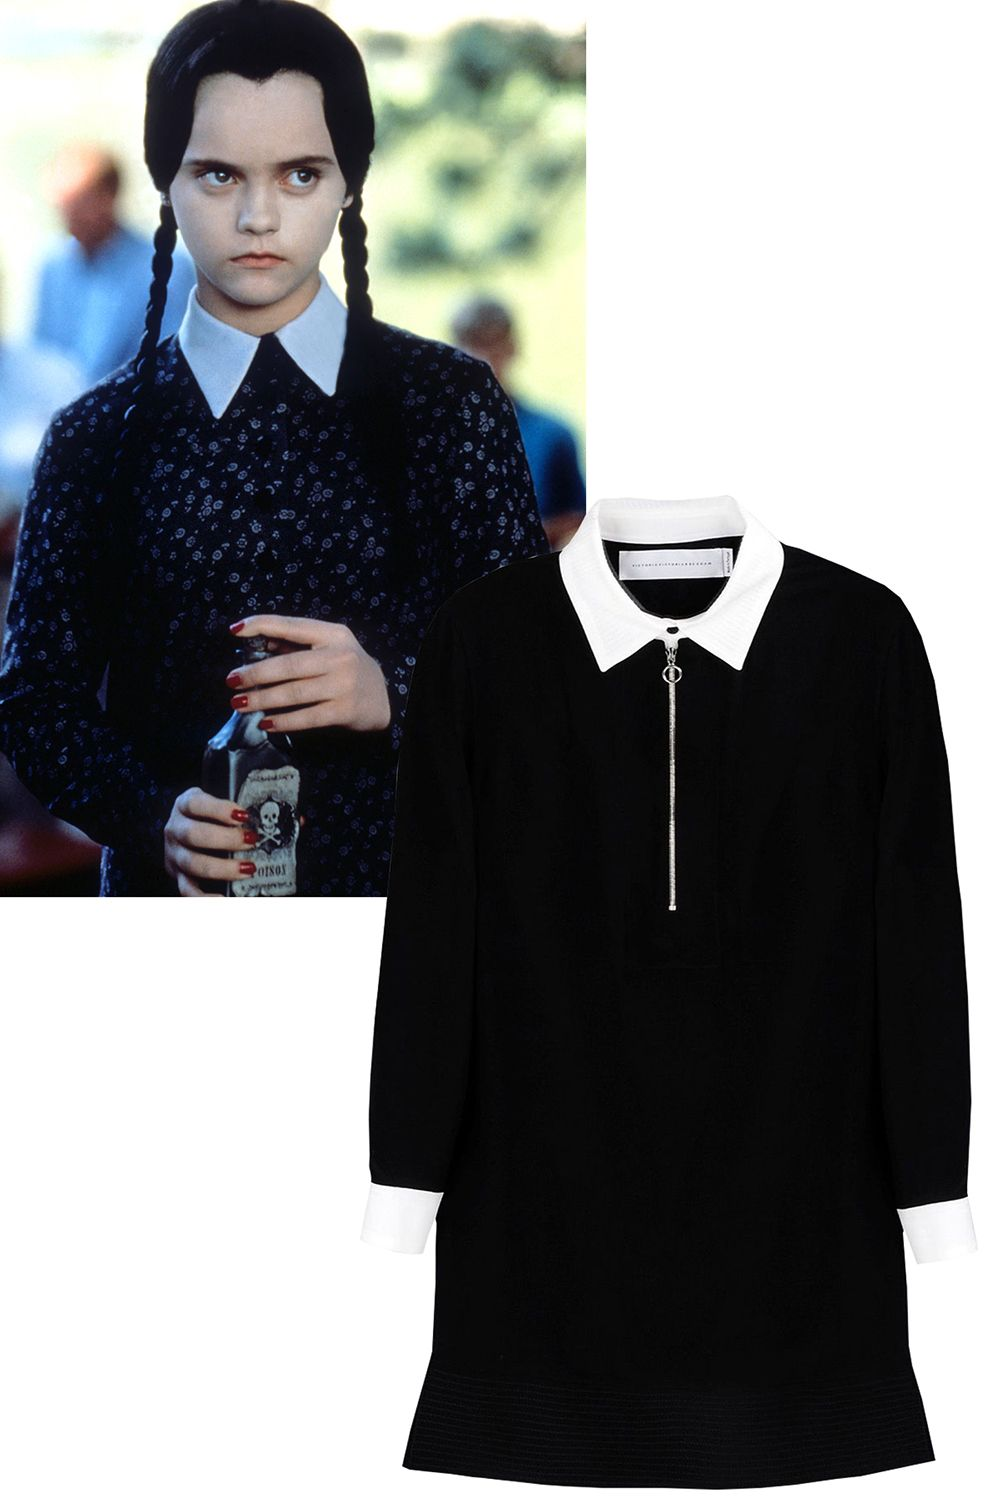 "<p>Dating back to the 1960s, Wednesday Addams is gothic chic's leading lady. Garner inspiration from her signature dress this season—angsty attitude not included. </p><p><em><strong>Victoria, Victoria Beckham</strong> dress, $610, <a href=""https://shop.harpersbazaar.com/designers/v/victoria-victoria-beckham/collared-dress-4712.html"" target=""_blank"">shopBAZAAR.com</a> </em></p>"